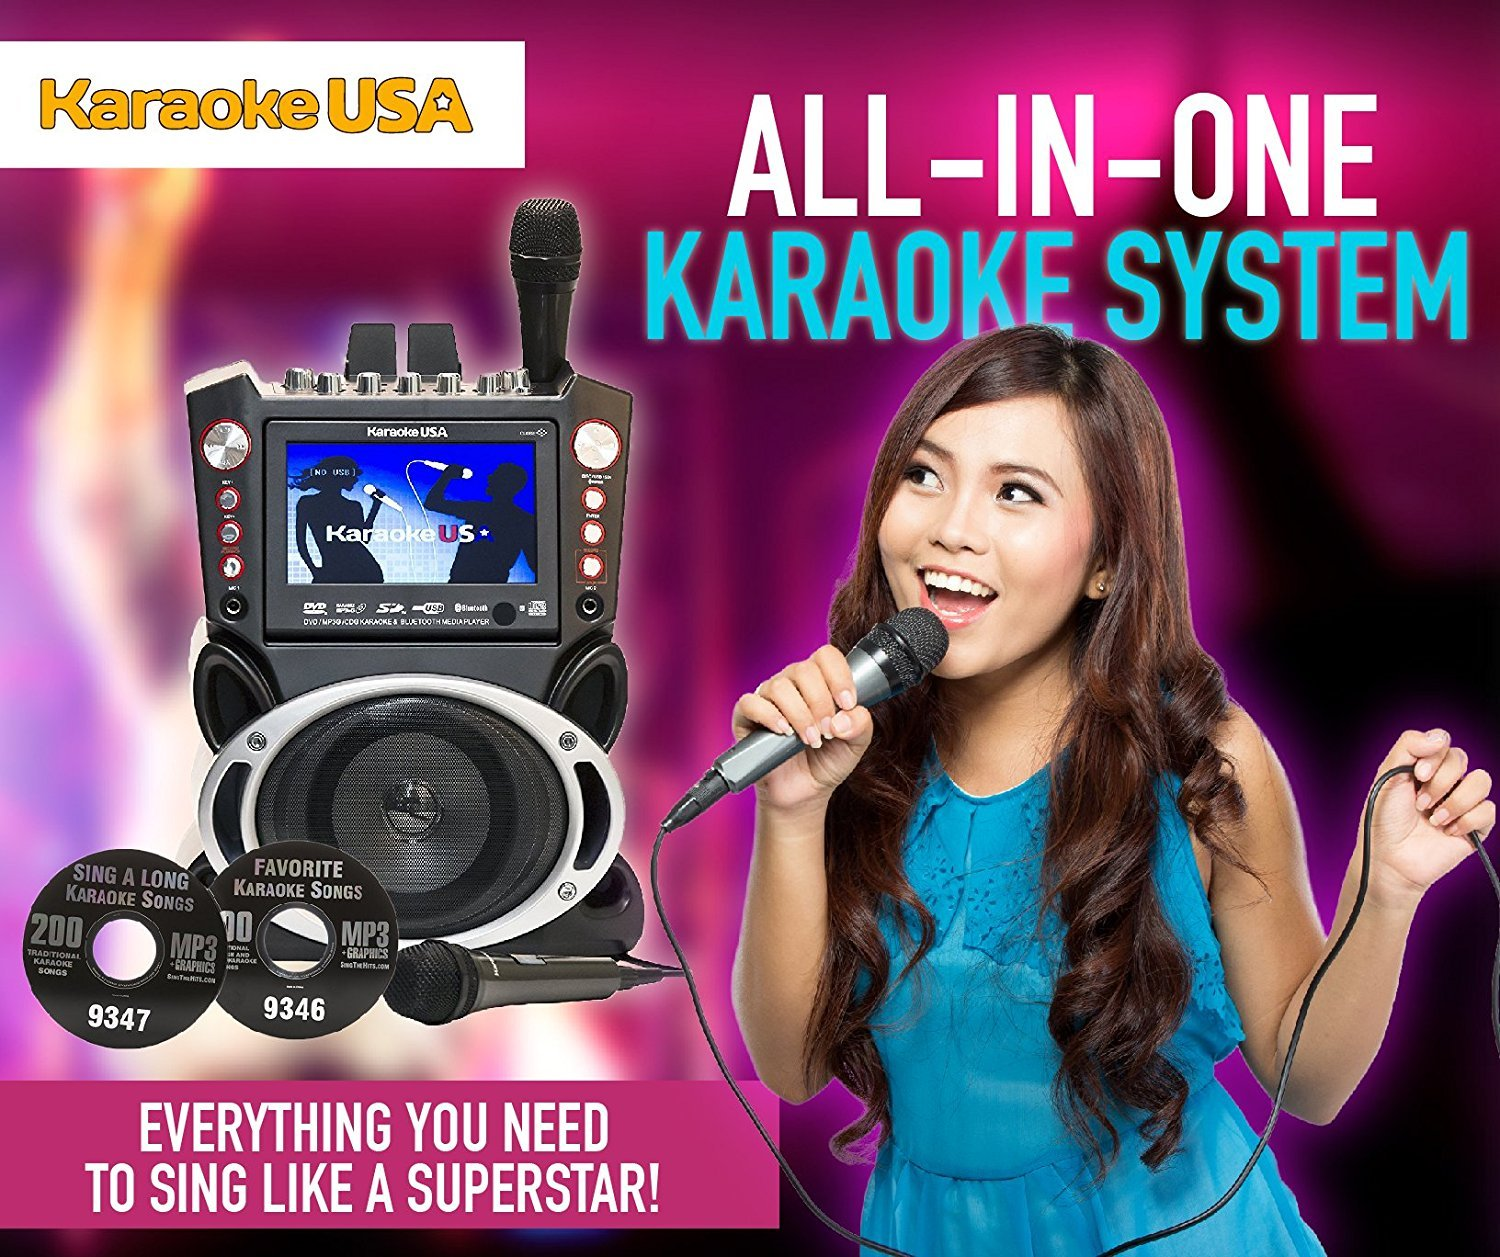 """Karaoke USA GF845 Complete Karaoke System with 2 Microphones, Remote  Control, 7"""" Color Display, LED Lights - Works with DVD, Bluetooth, CD, MP3  and"""